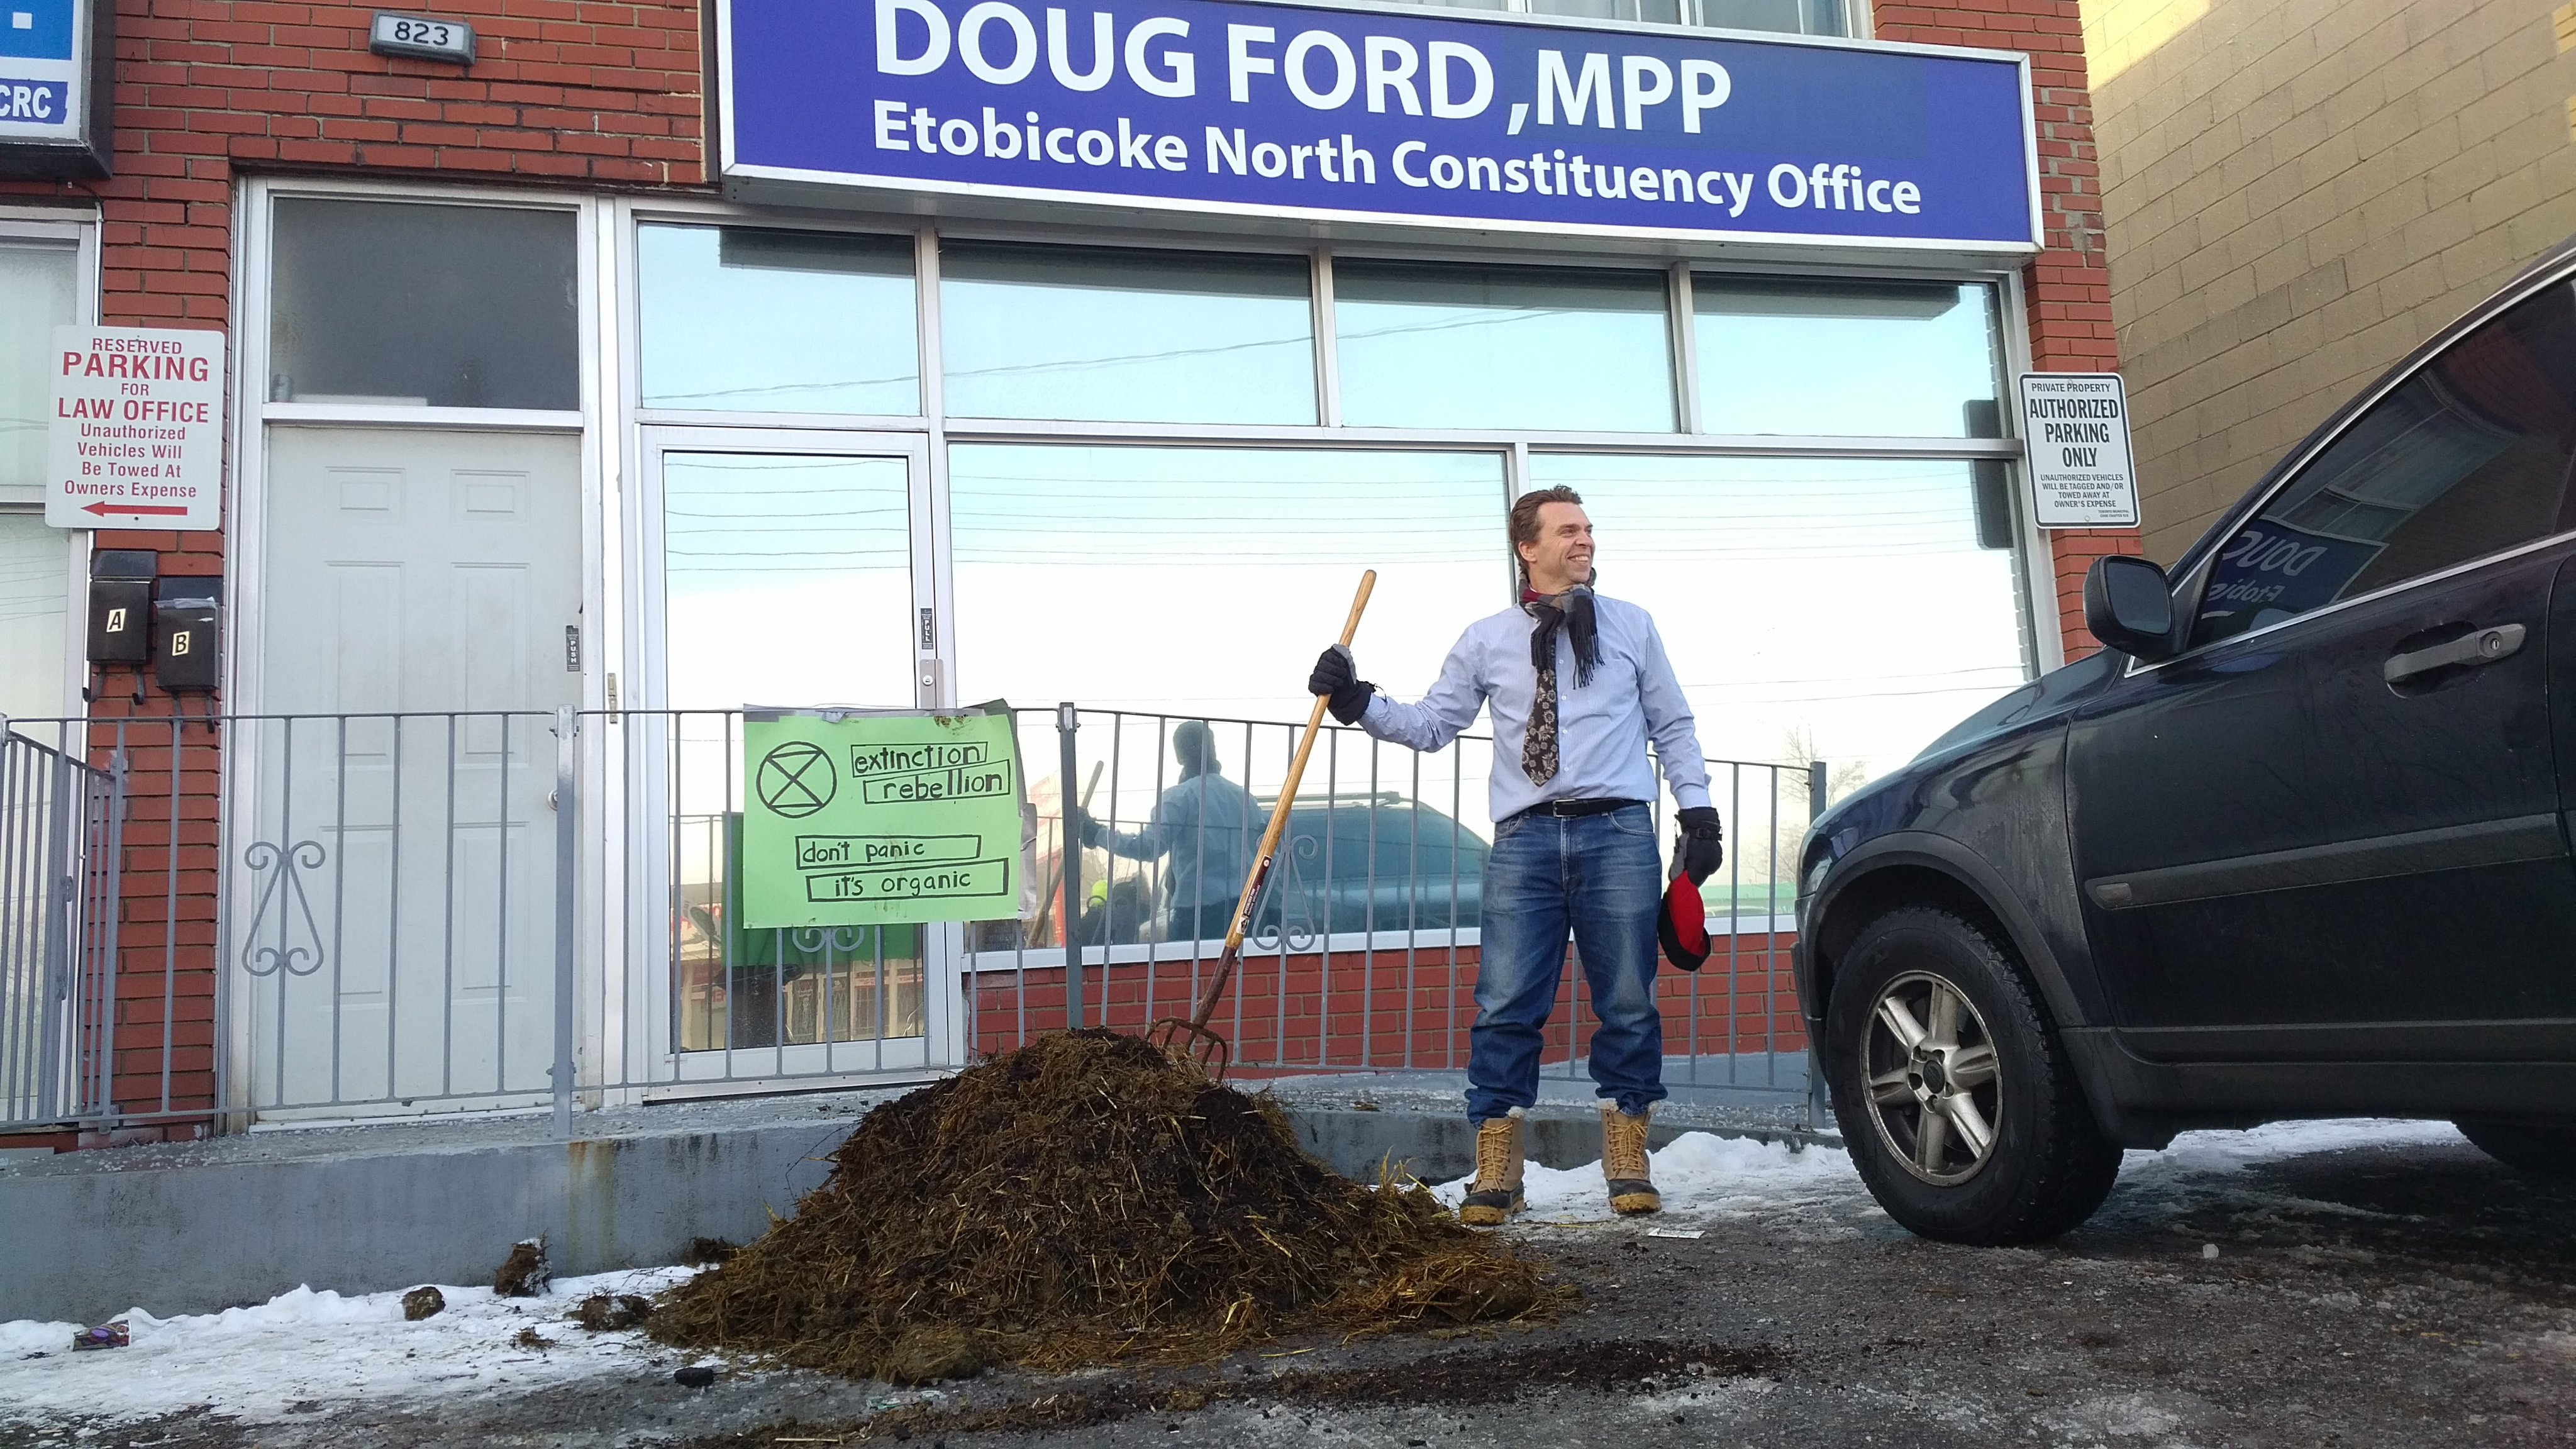 Two charged for dung-dumping incident at Ford's Etobicoke office